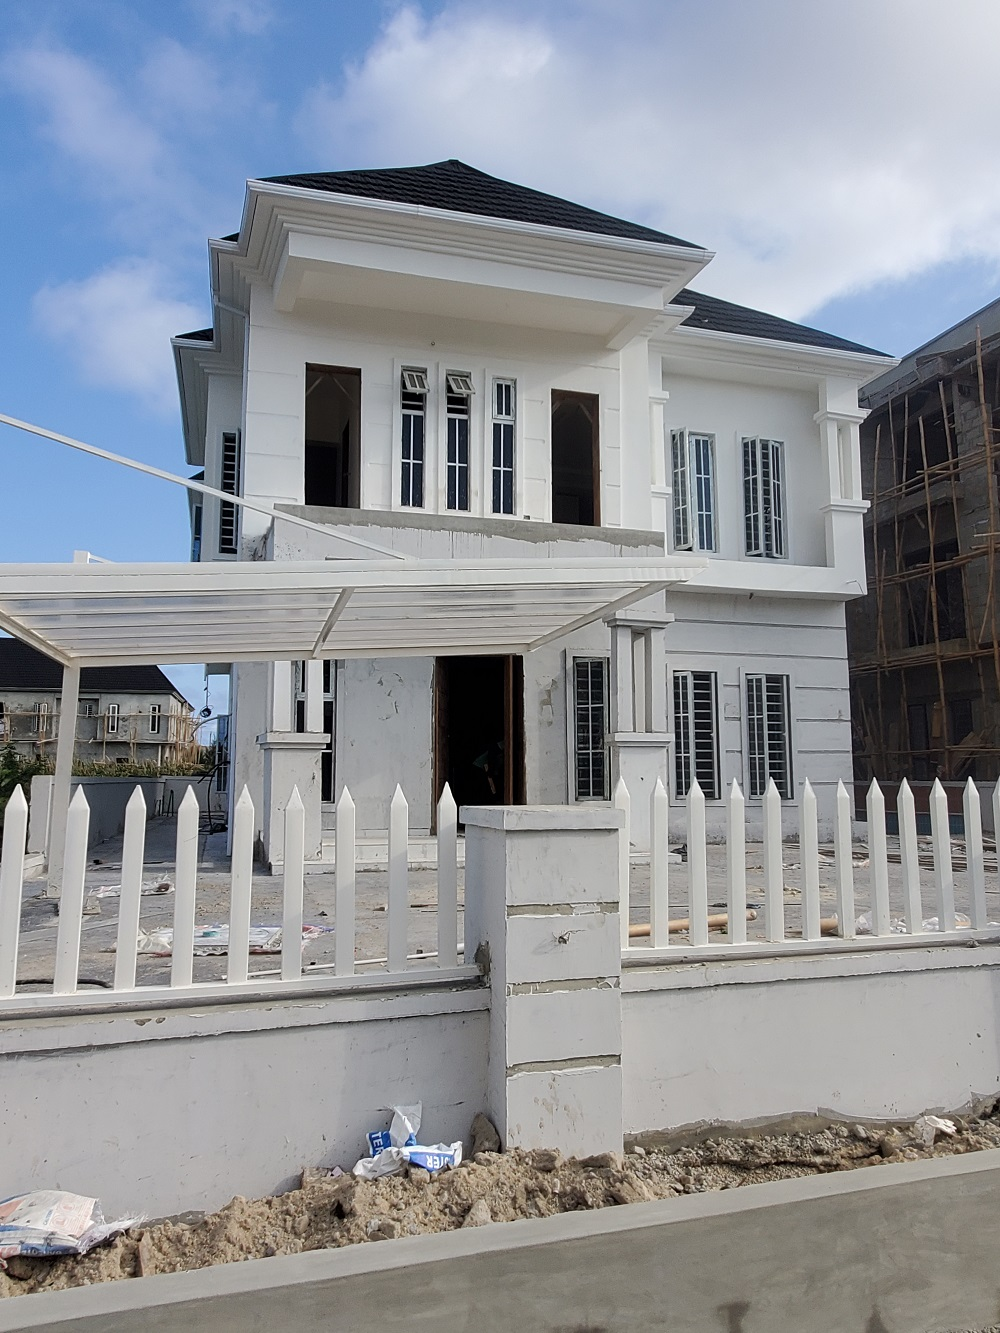 5 BEDROOM DETACHED HOUSE WITH SWIMMING POOL